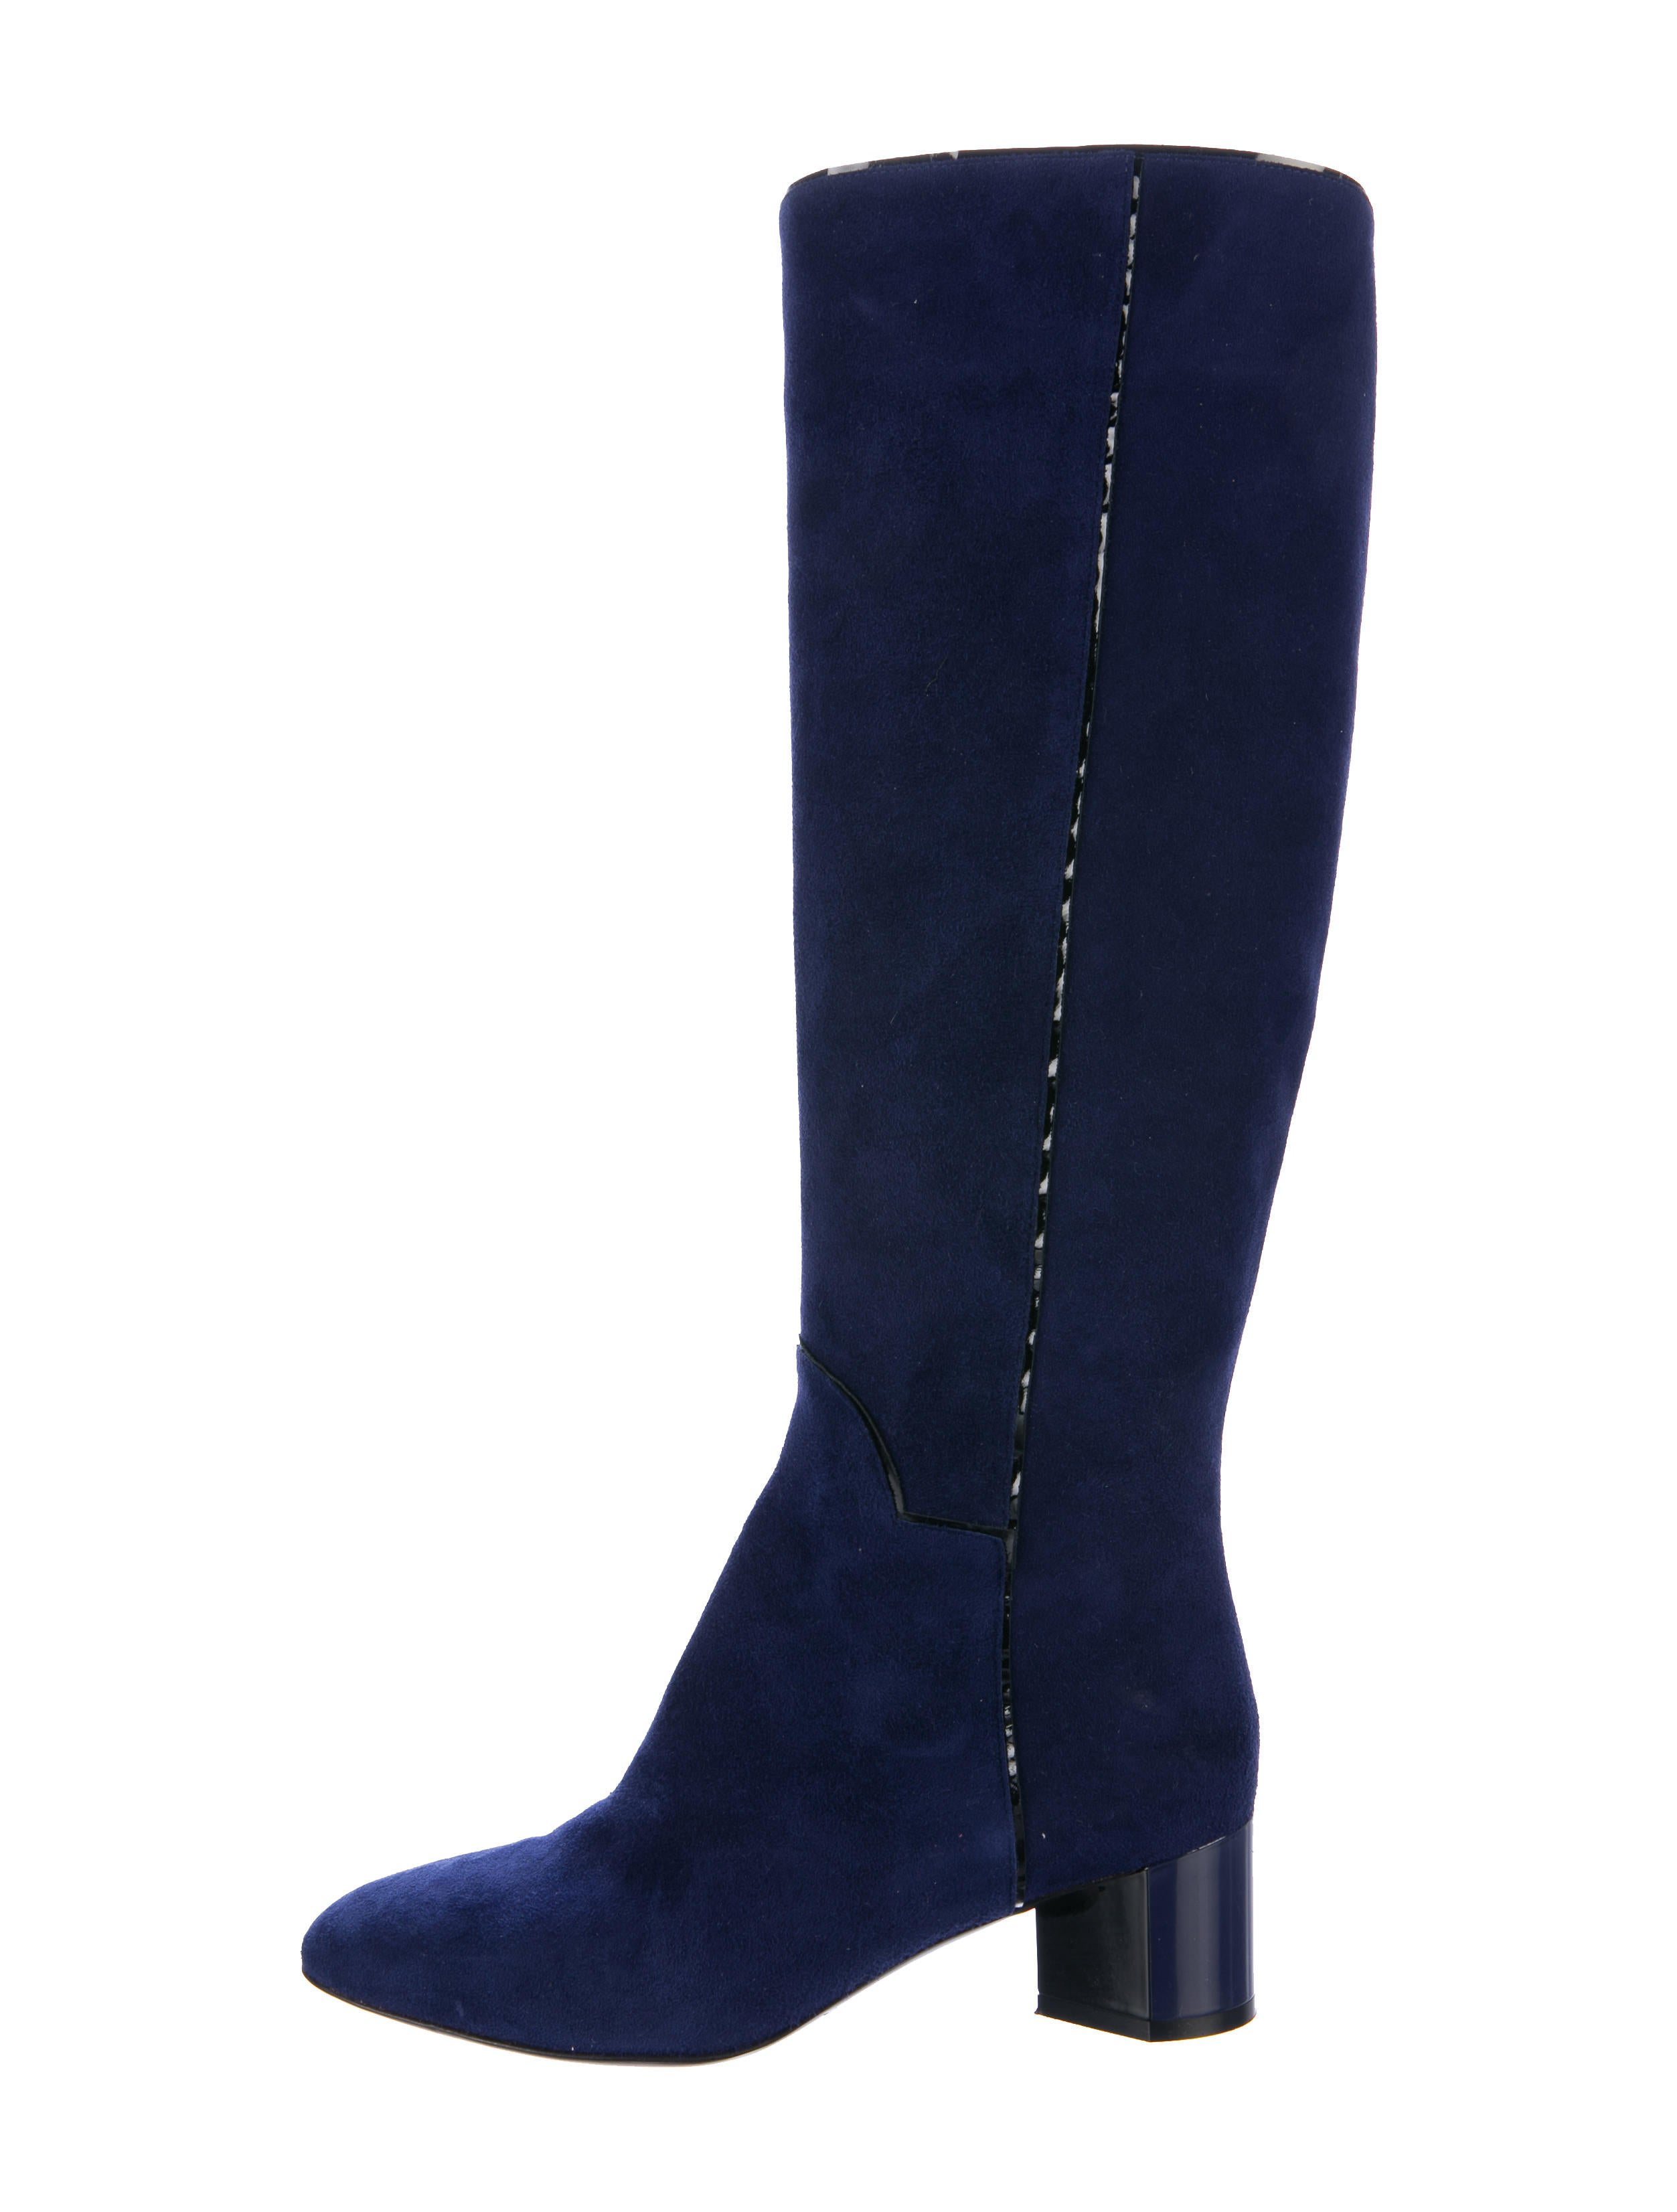 Pierre Hardy Suede Knee-High Boots - Shoes